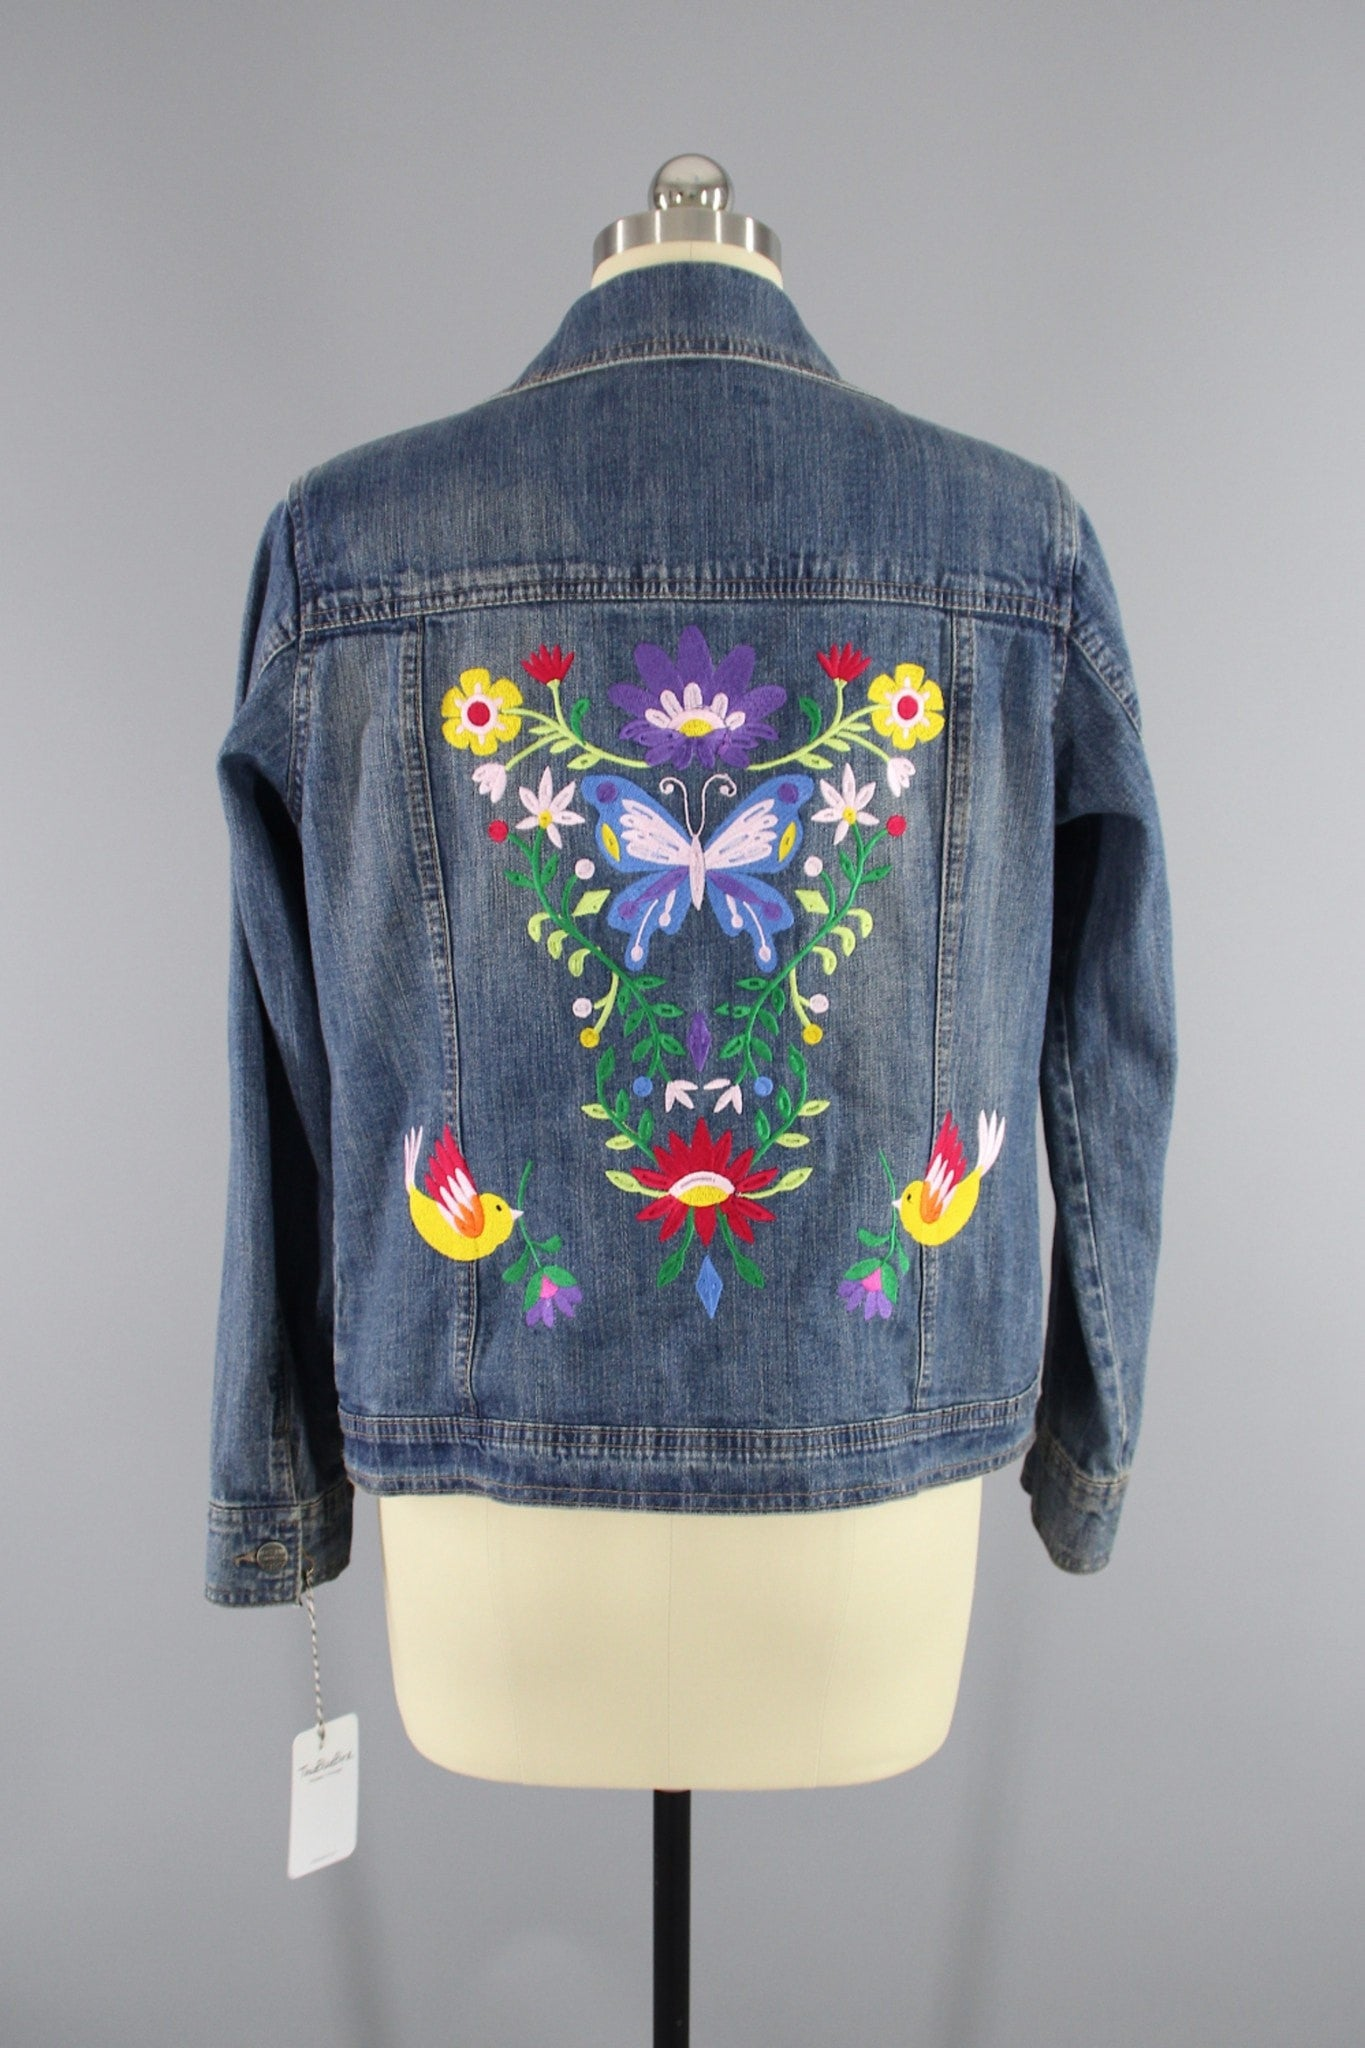 Embroidered Denim Jacket / Butterly Birds Floral Folk Embroidery Outerwear ThisBlueBird